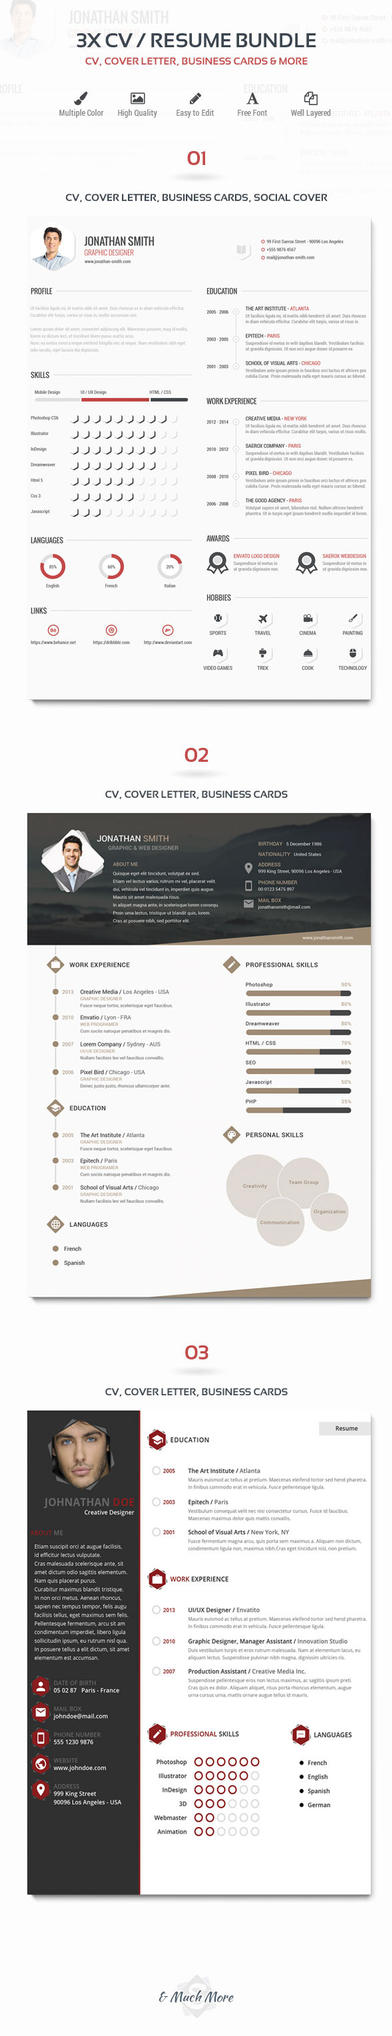 3x CV/Resume Bundle by DSaerox